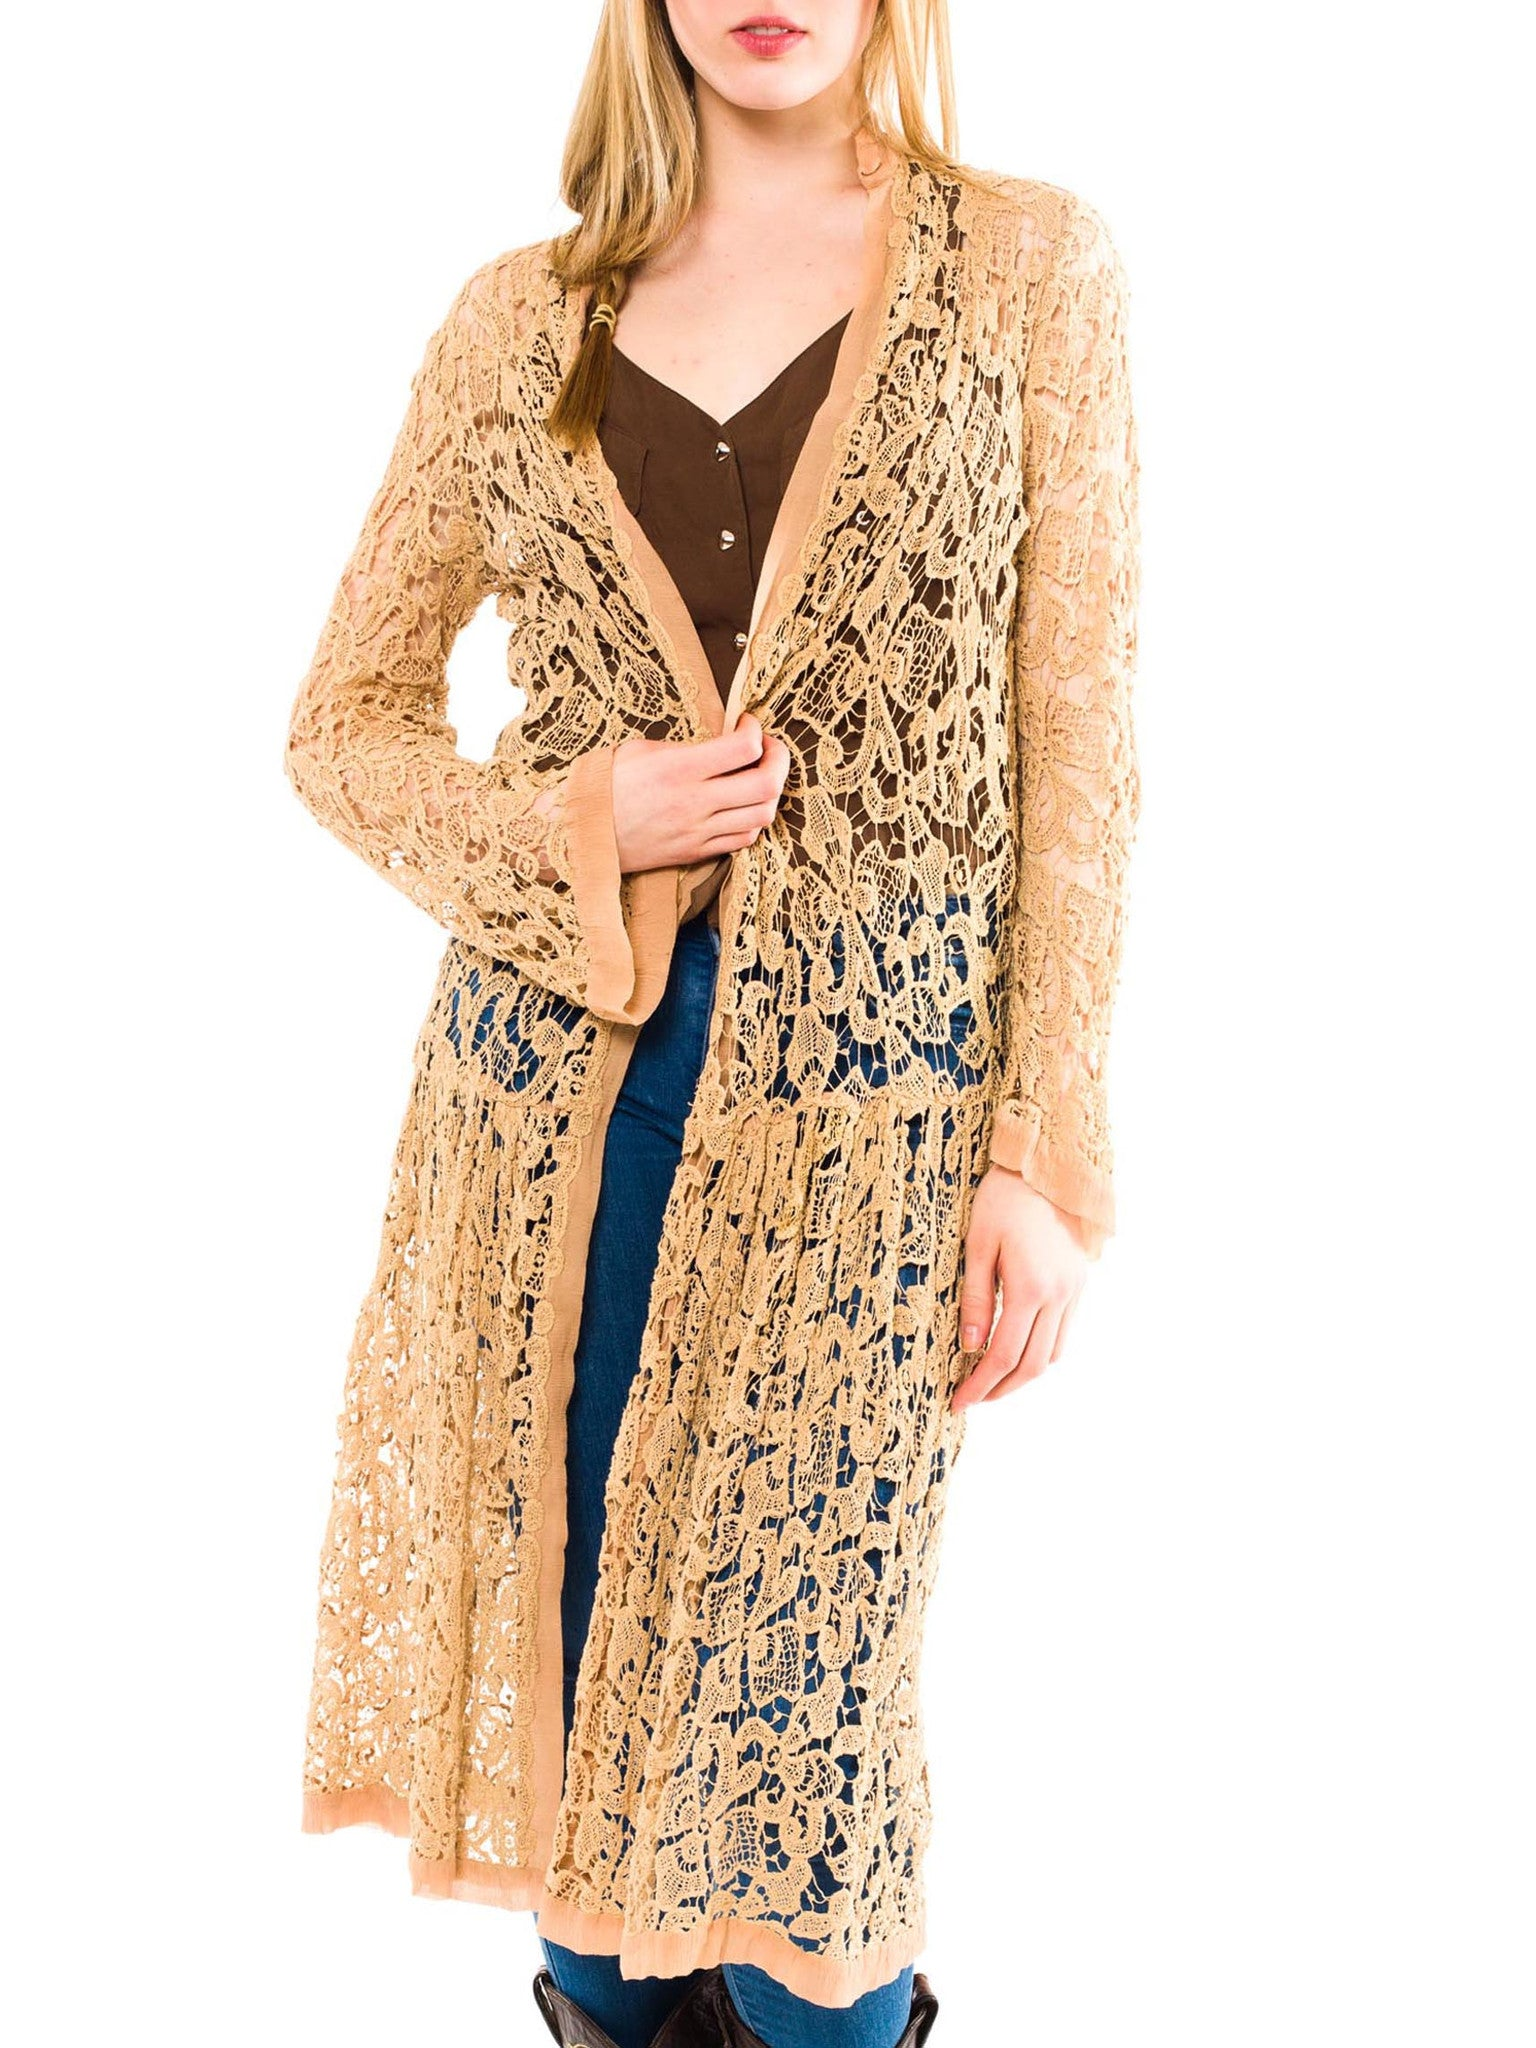 Fantastic Lace Duster Jacket From The 1920s